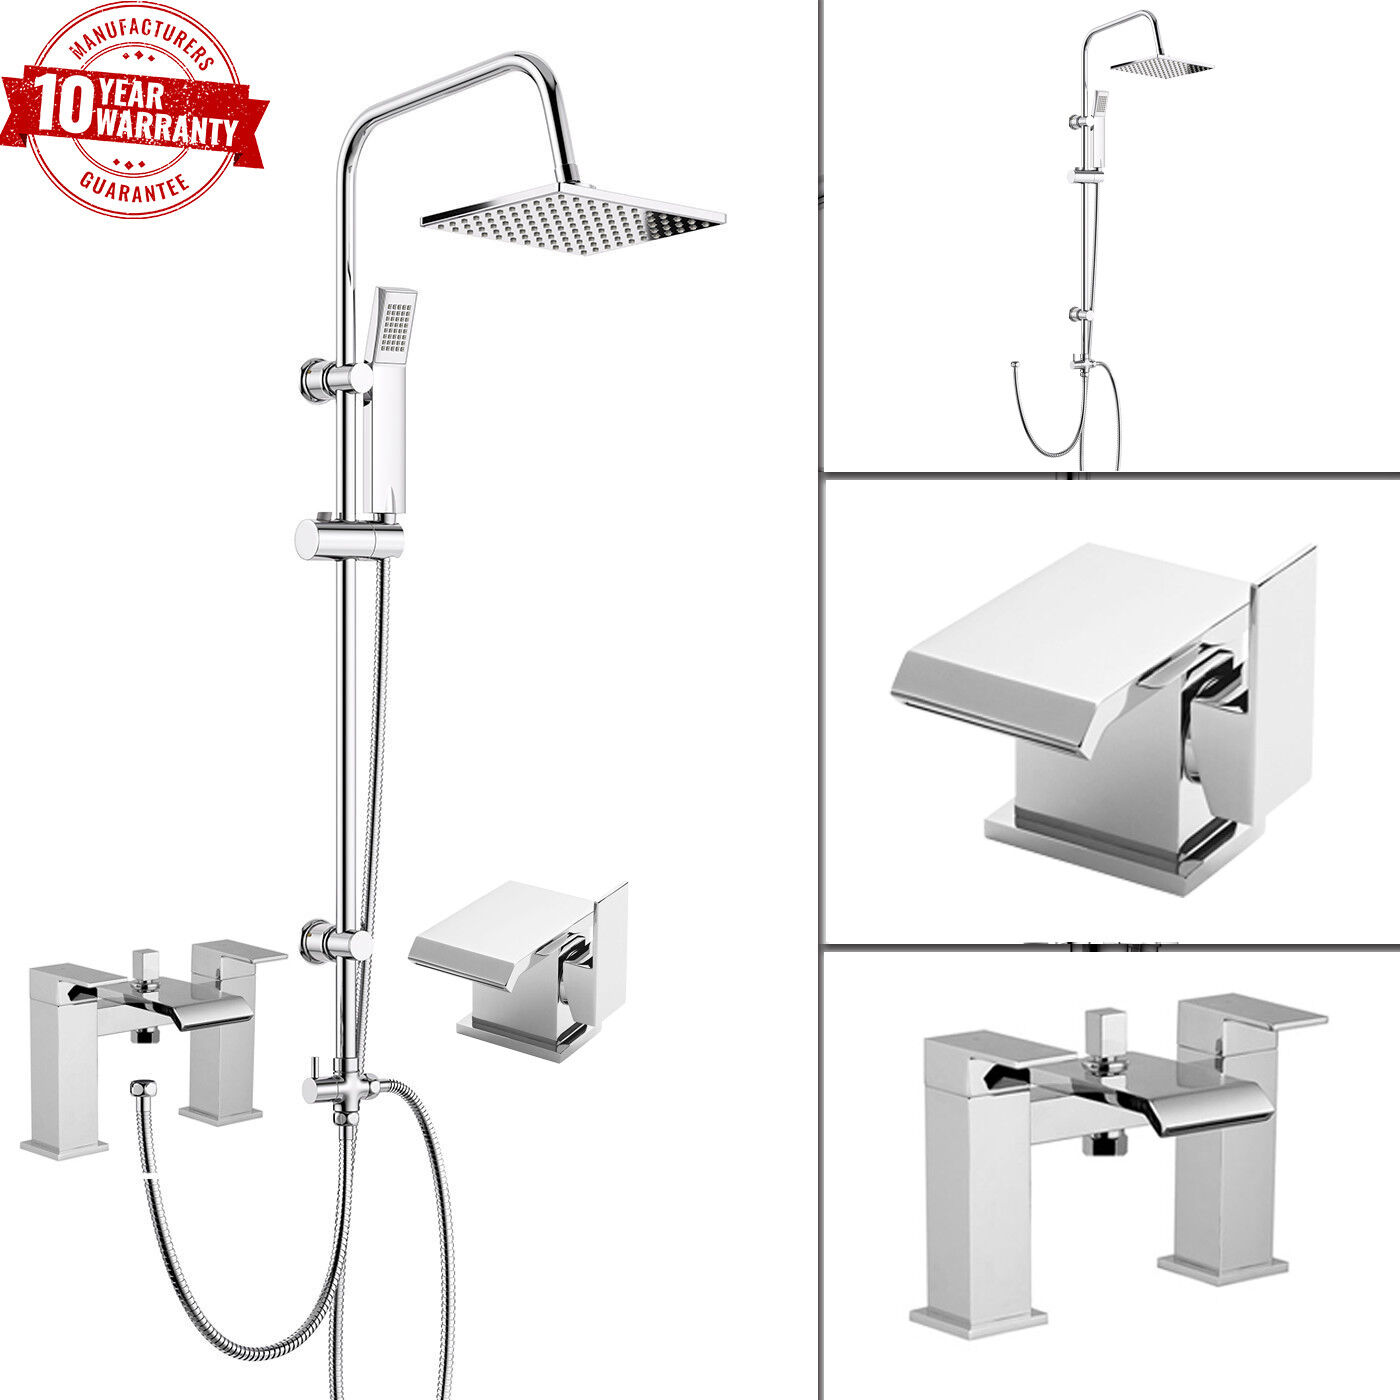 Waterfall Bath Shower Mixer Tap With 3 Way Square Shower Rigid Riser /& Basin Tap